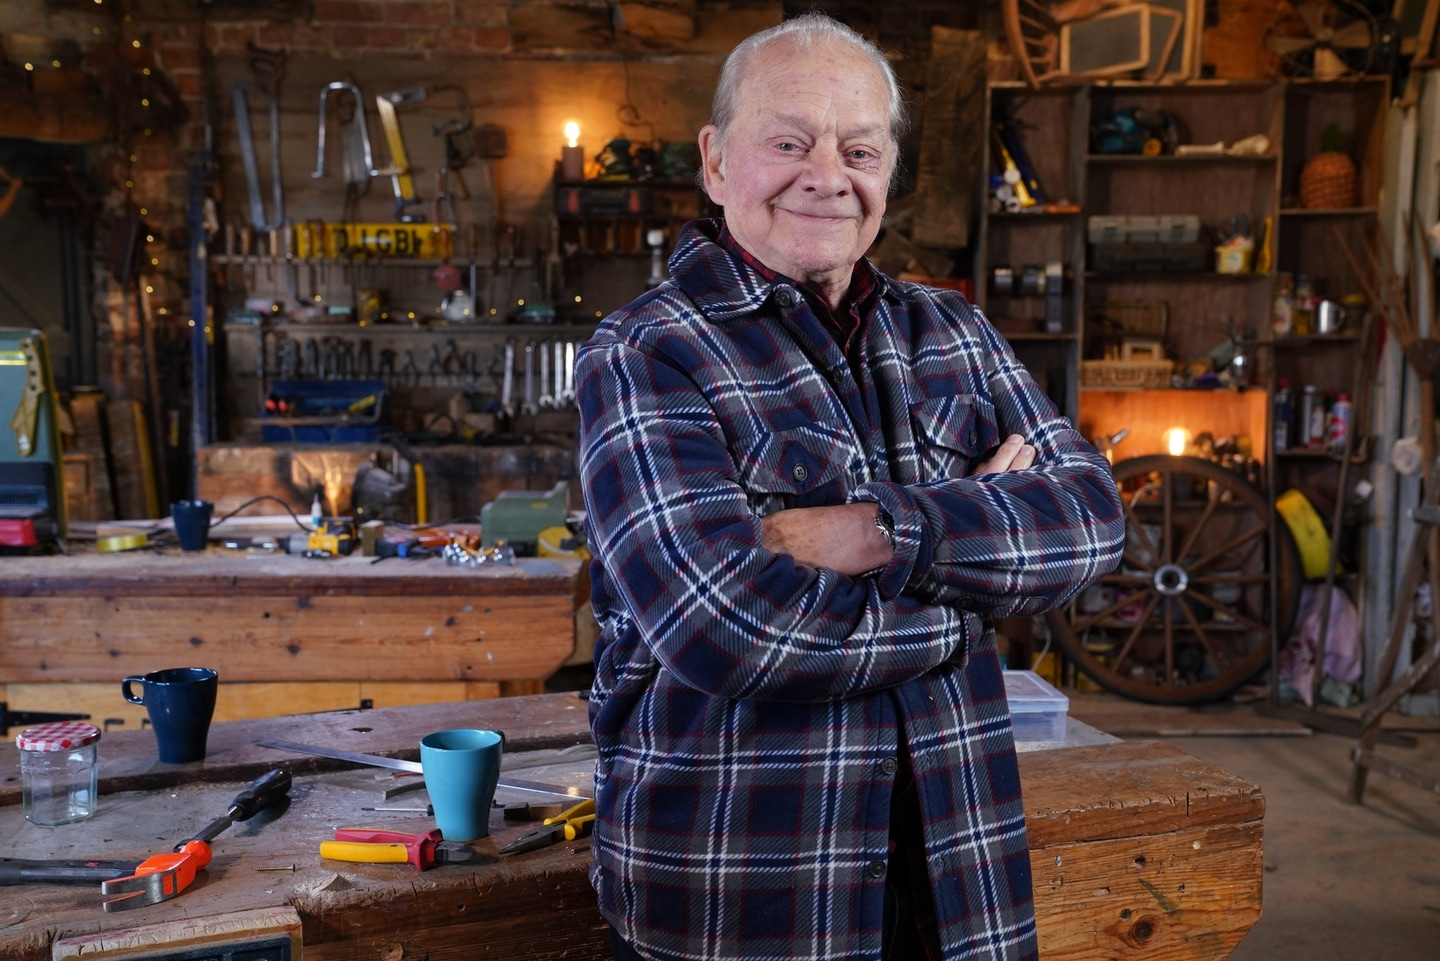 Leeds Based Wise Owl Films Land More4 Commission With Sir David Jason As He Explores The History Of Britain's Greatest Inventions